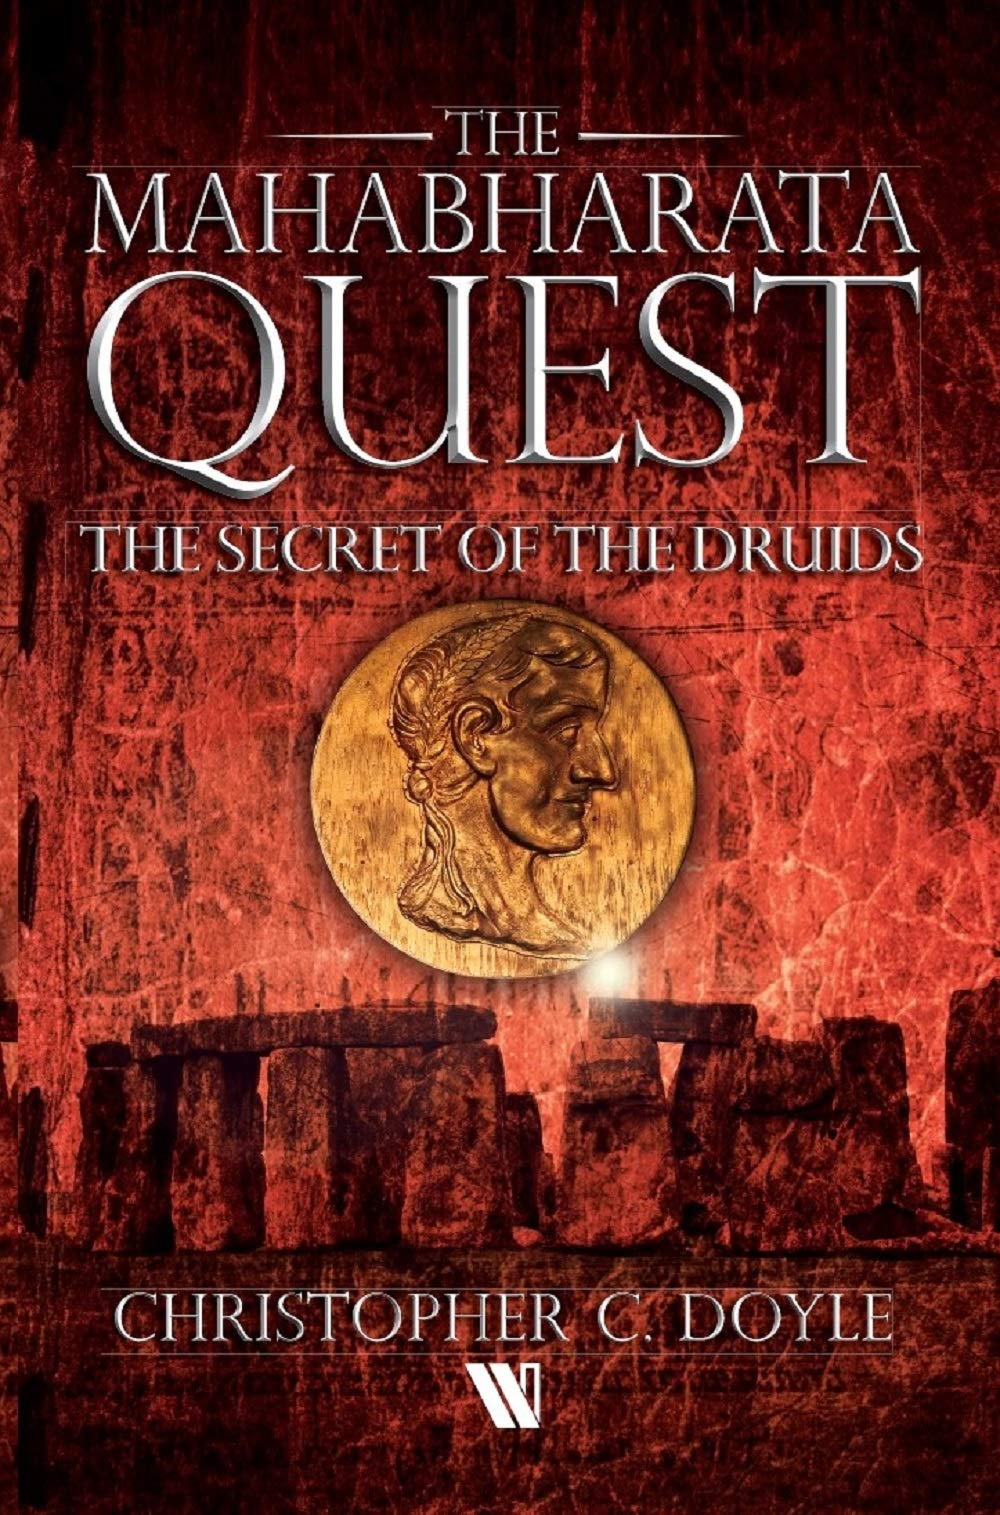 c668a26de0a1 Buy The Secret of the Druids (Mahabharata Quest Series Book 2) Book ...